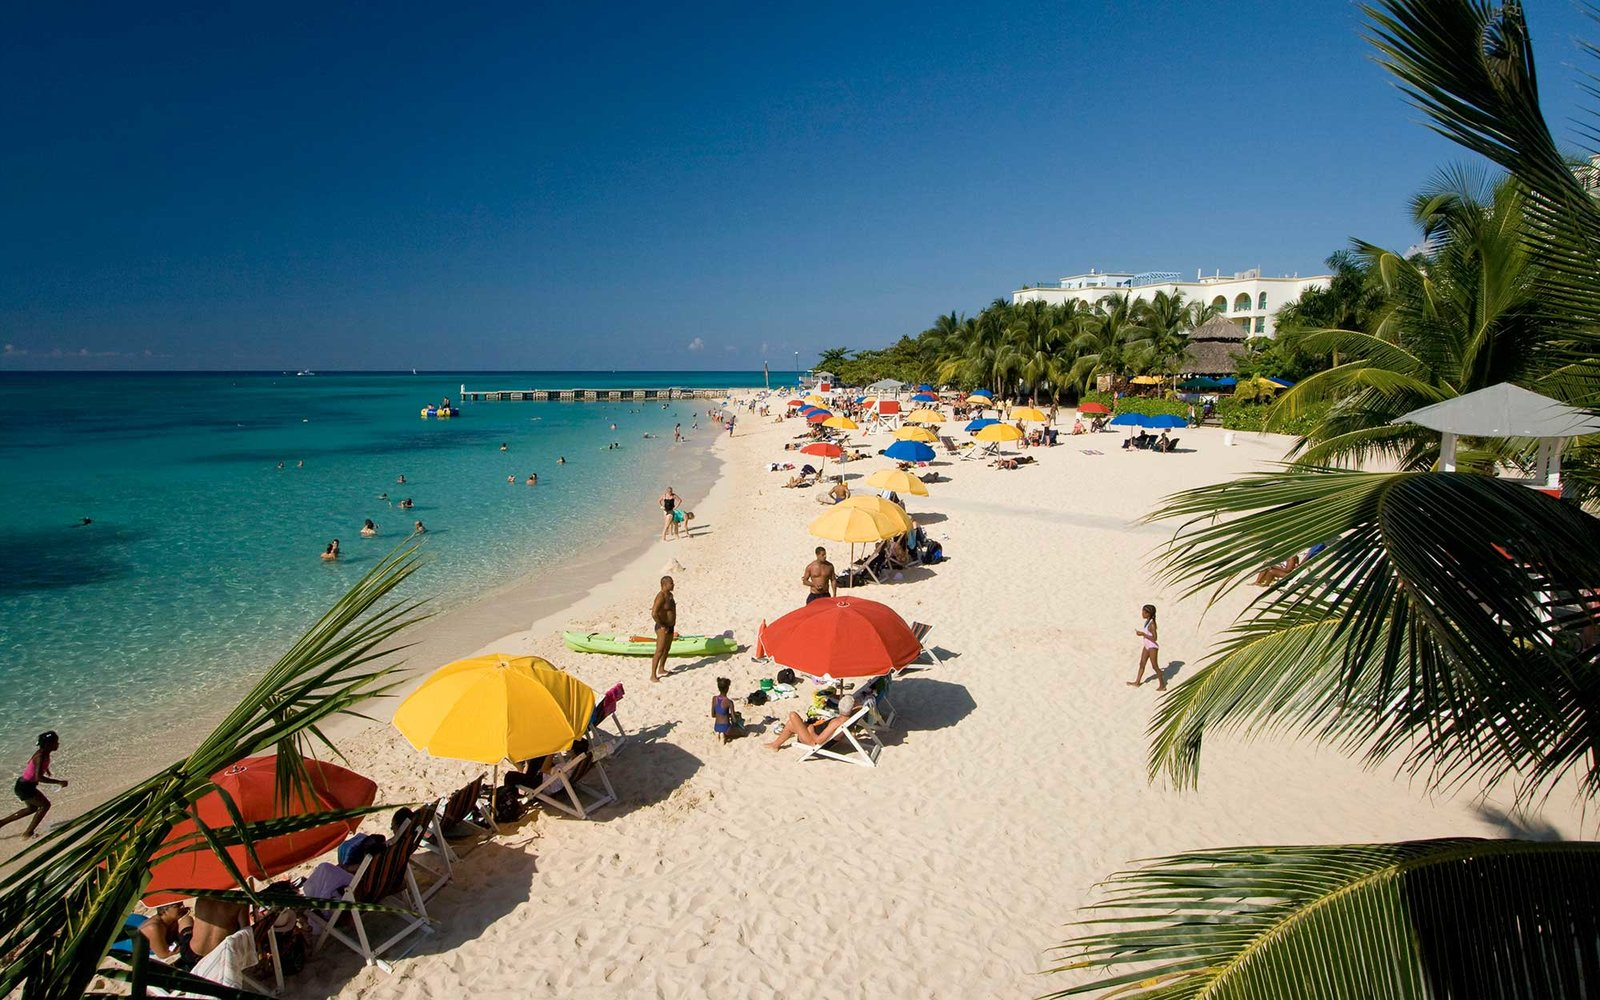 If you haven't been to Jamaica, this is the year to go: